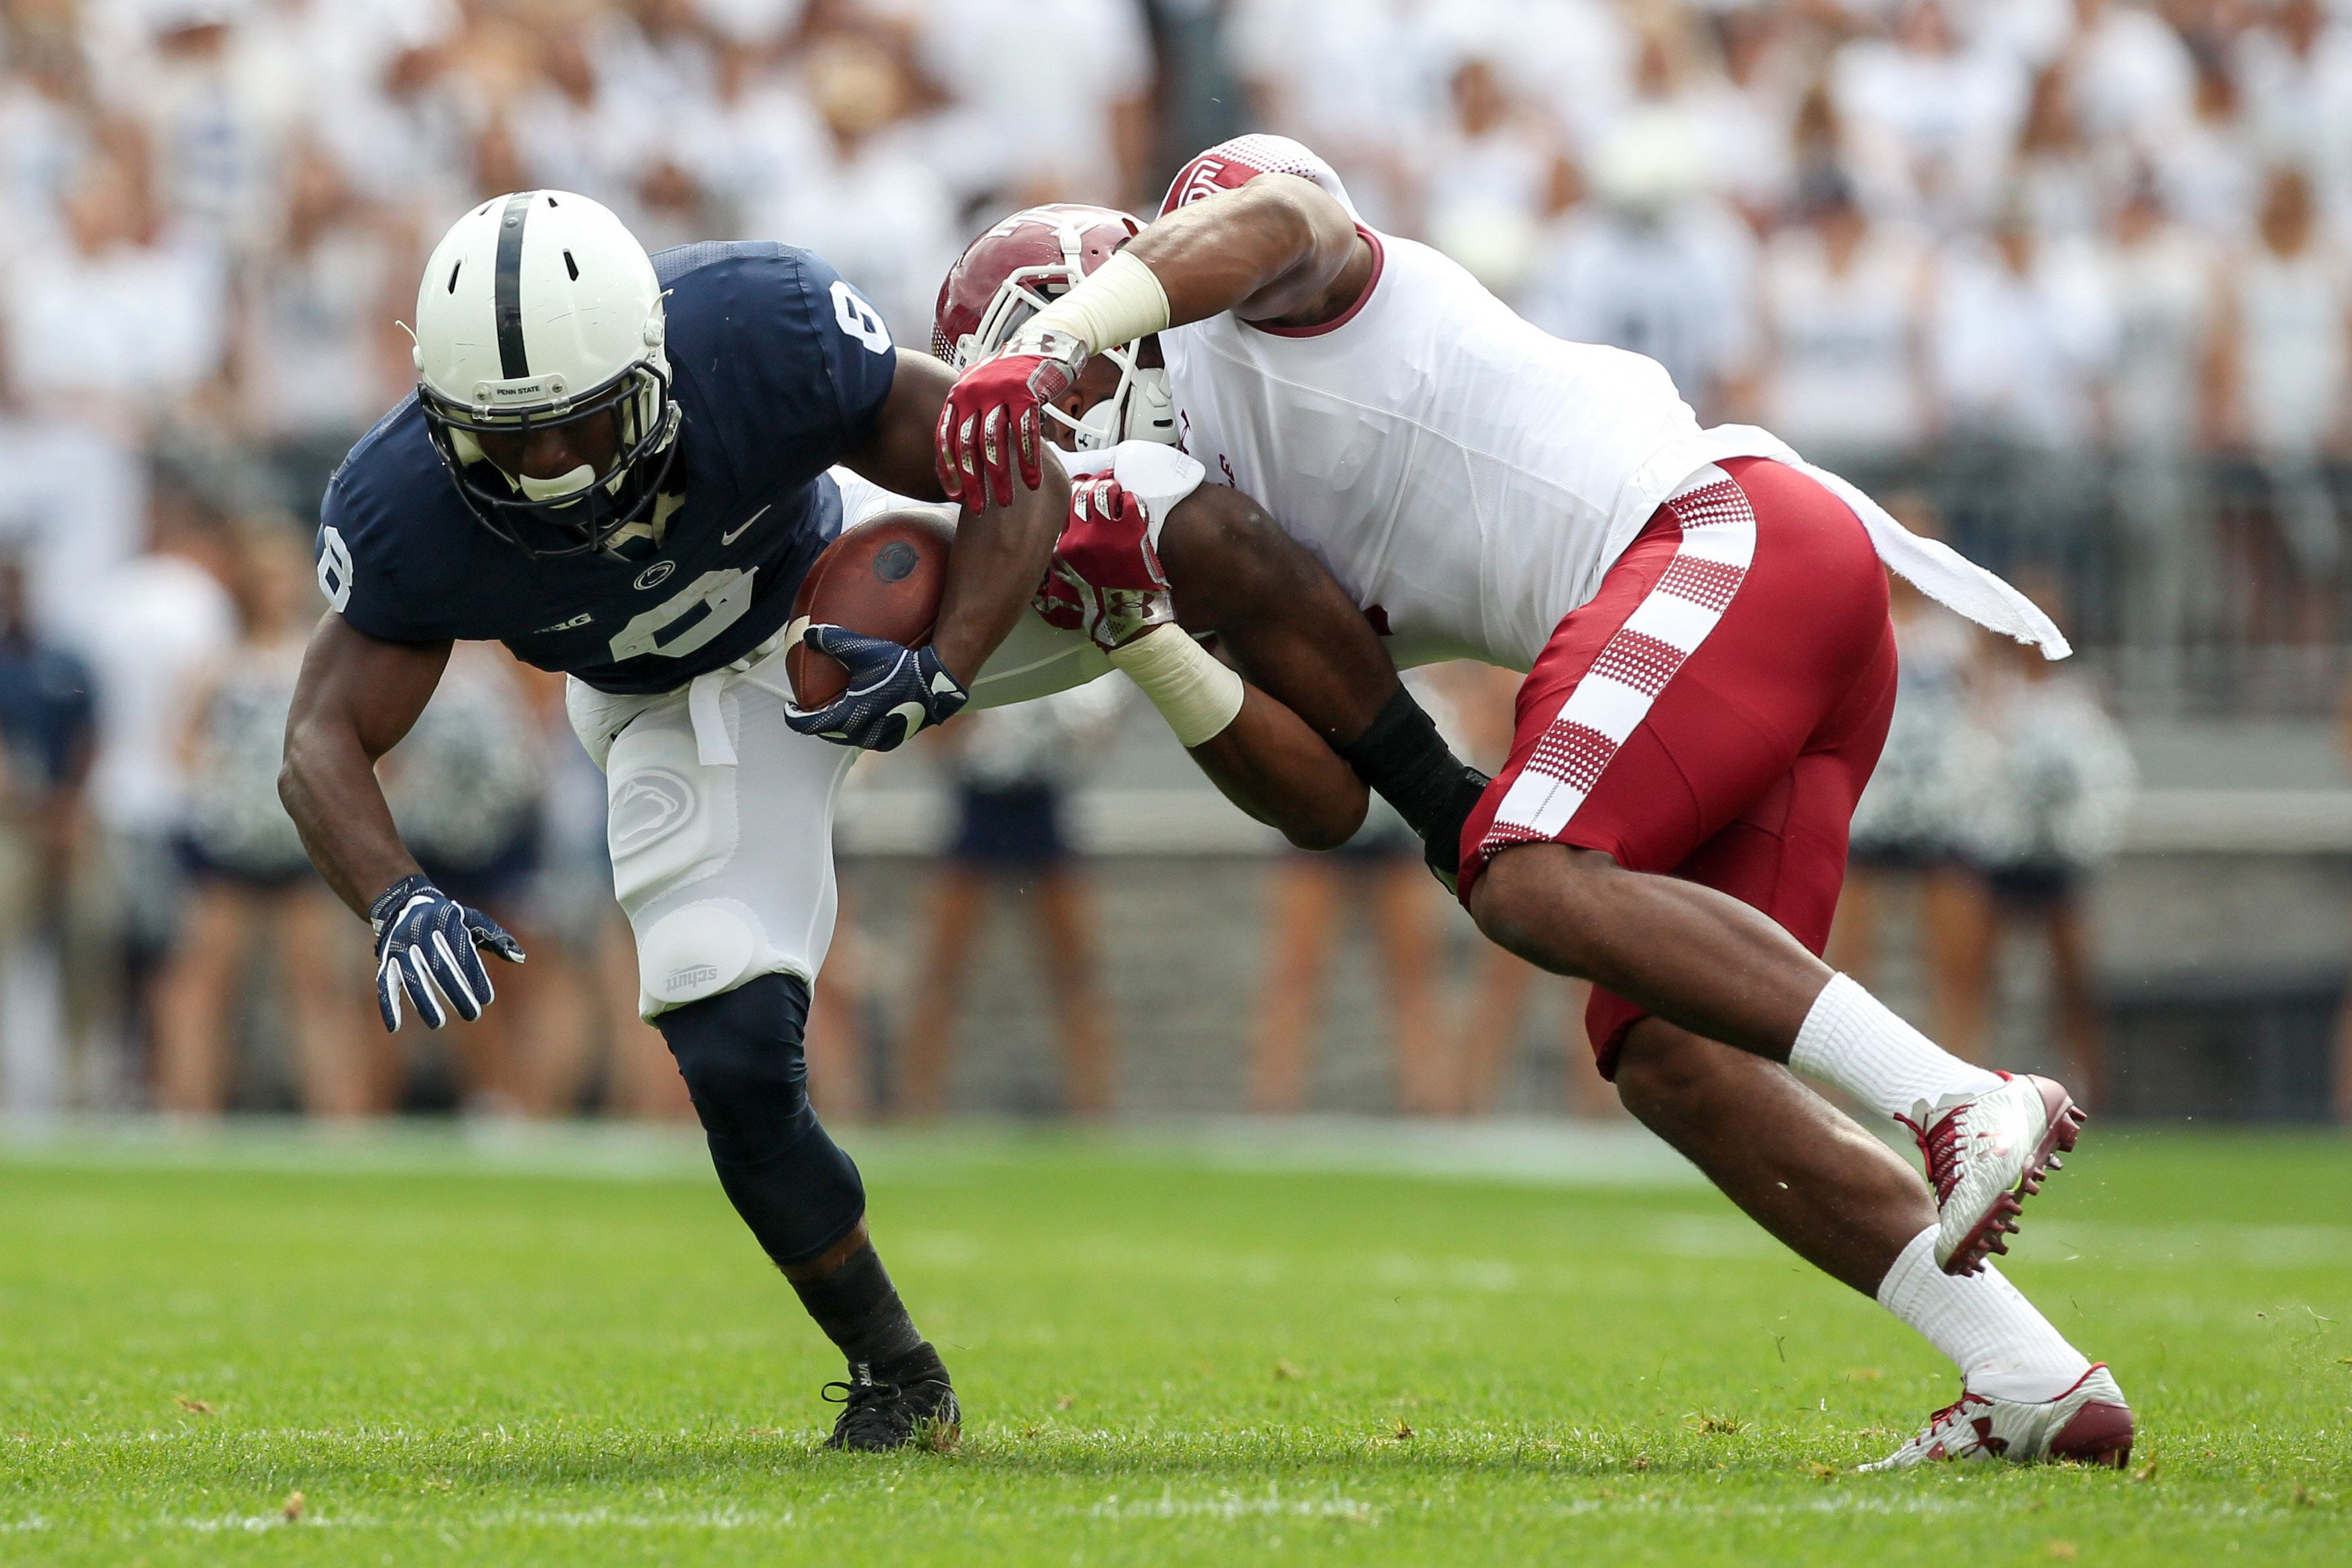 Dallas Cowboys 2017 NFL Draft Target: Temple LB Haason Reddick